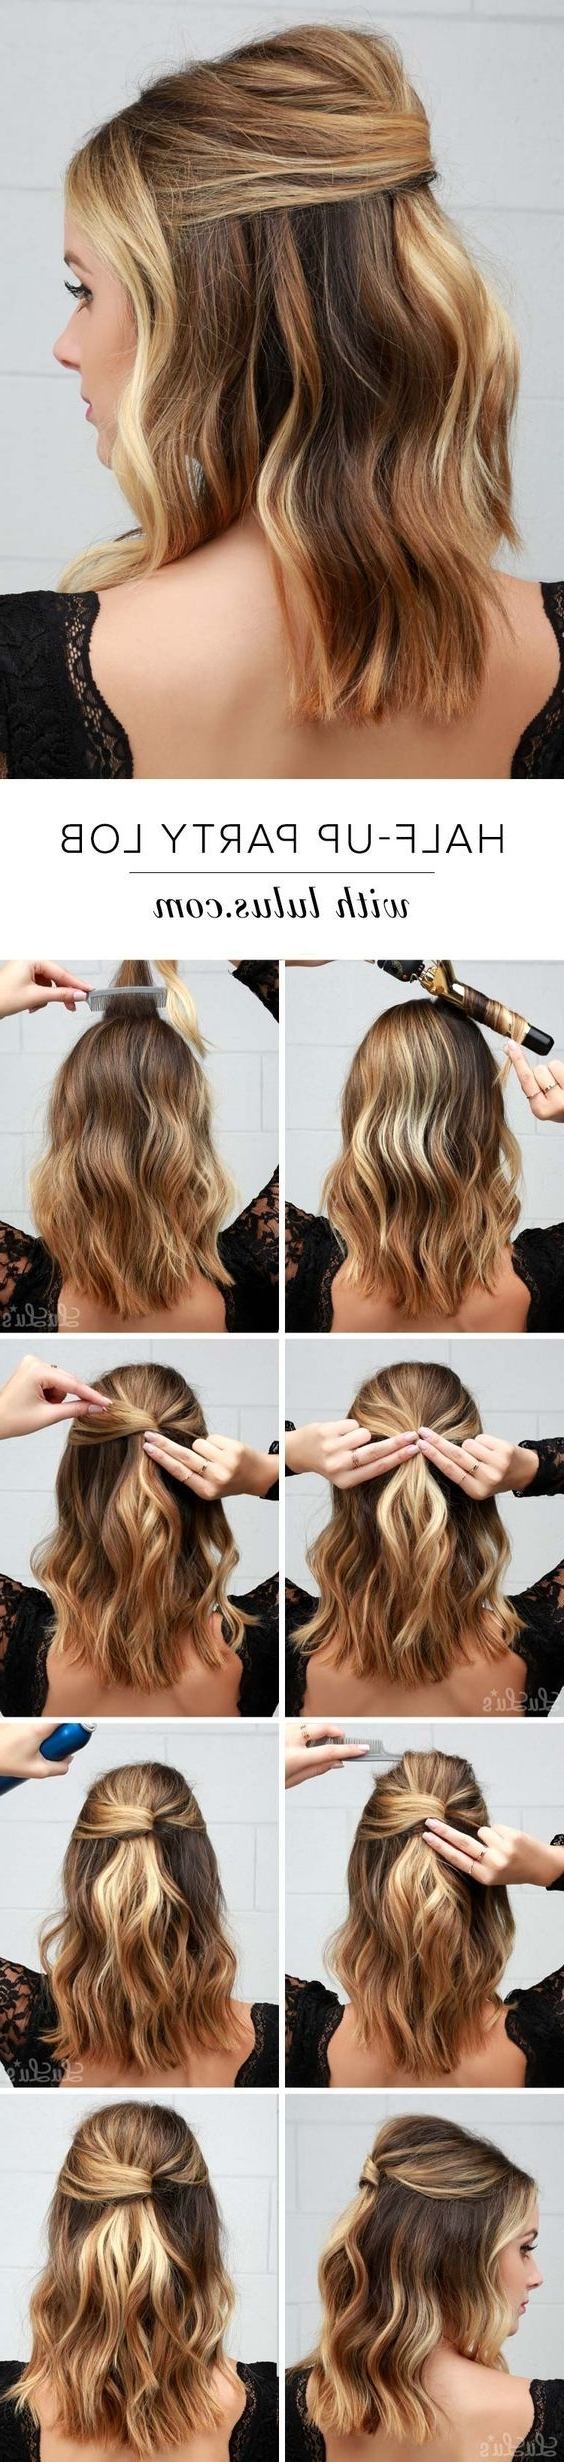 15 Ways To Style Your Lobs (Long Bob Hairstyle Ideas) – Pretty Designs With Regard To Current Braided Lob Hairstyles (View 2 of 15)